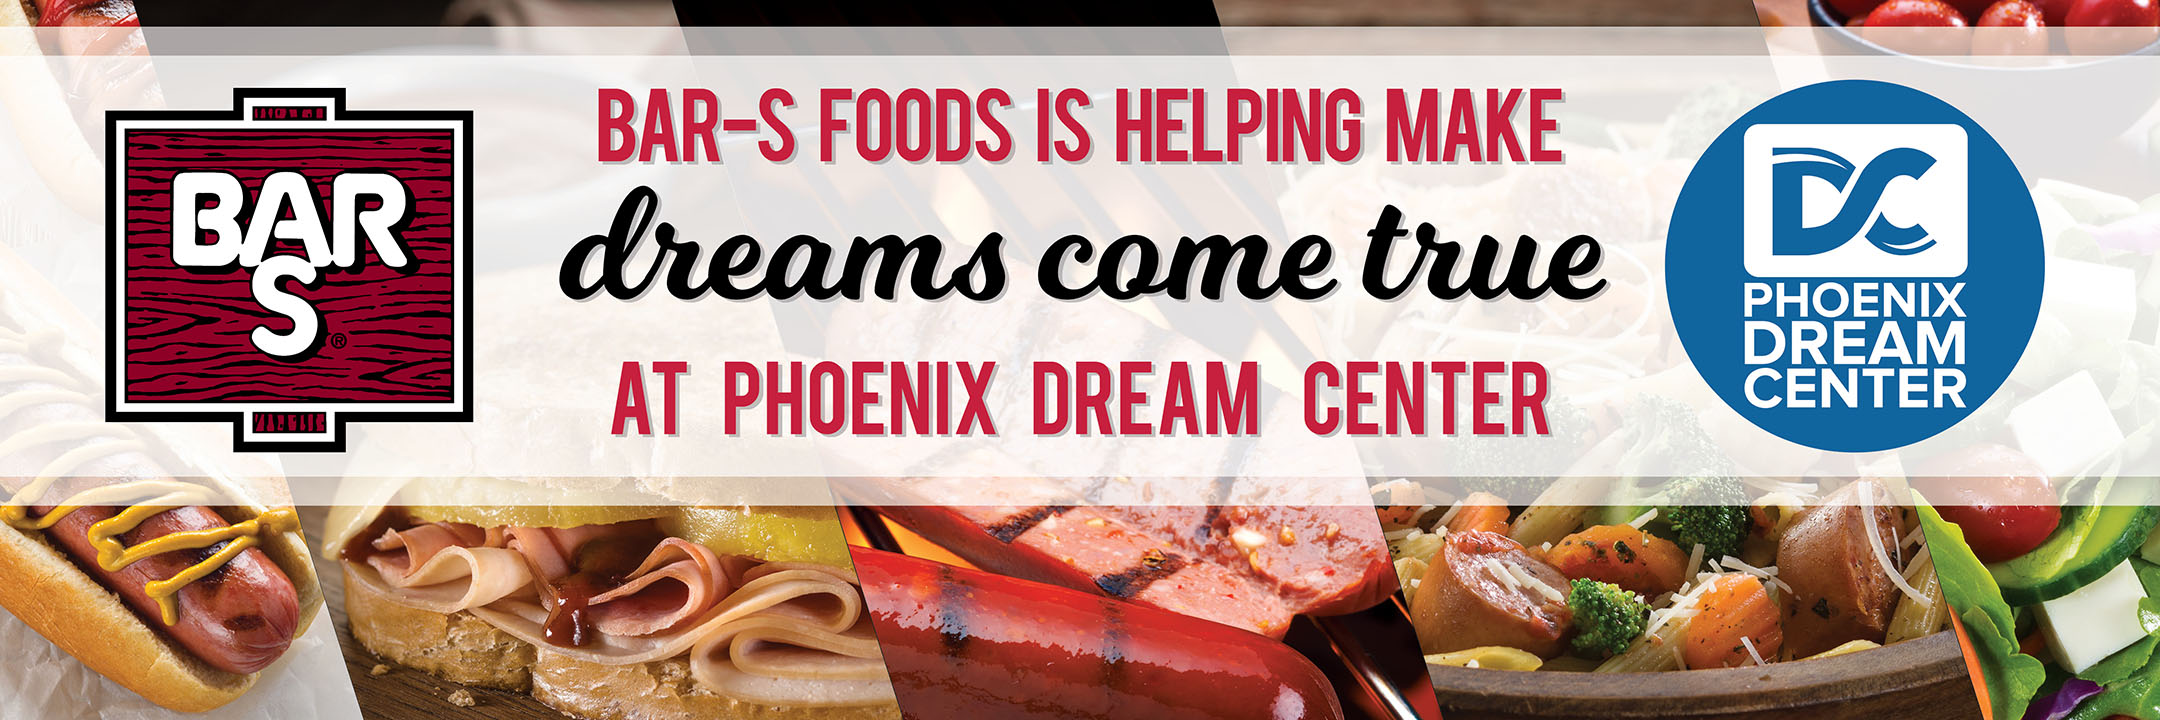 Bar-S Foods - Phoenix Dream Center